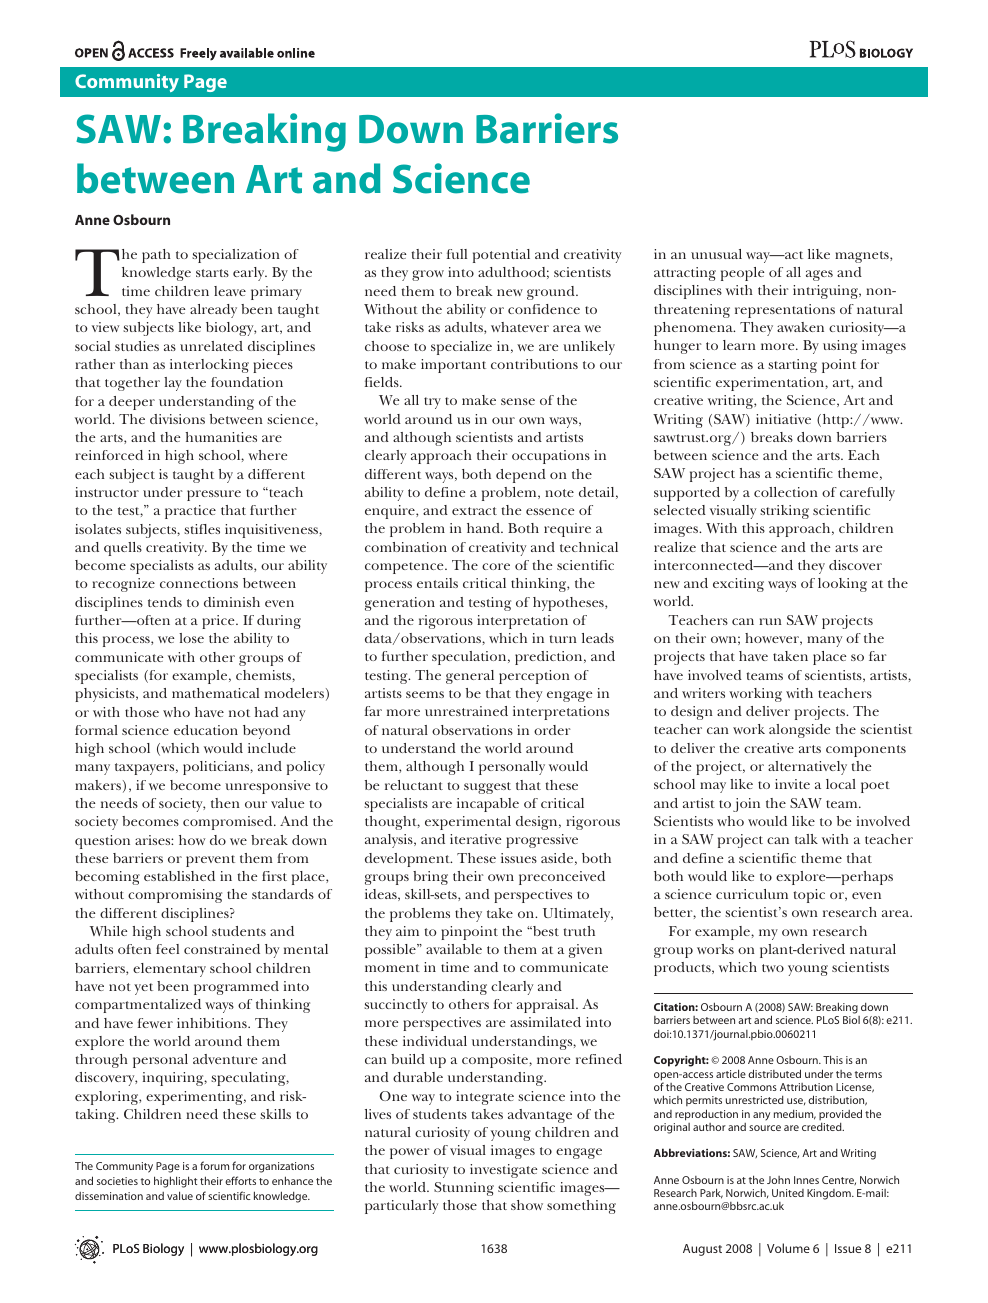 SAW: Breaking Down Barriers between Art and Science – topic of ...